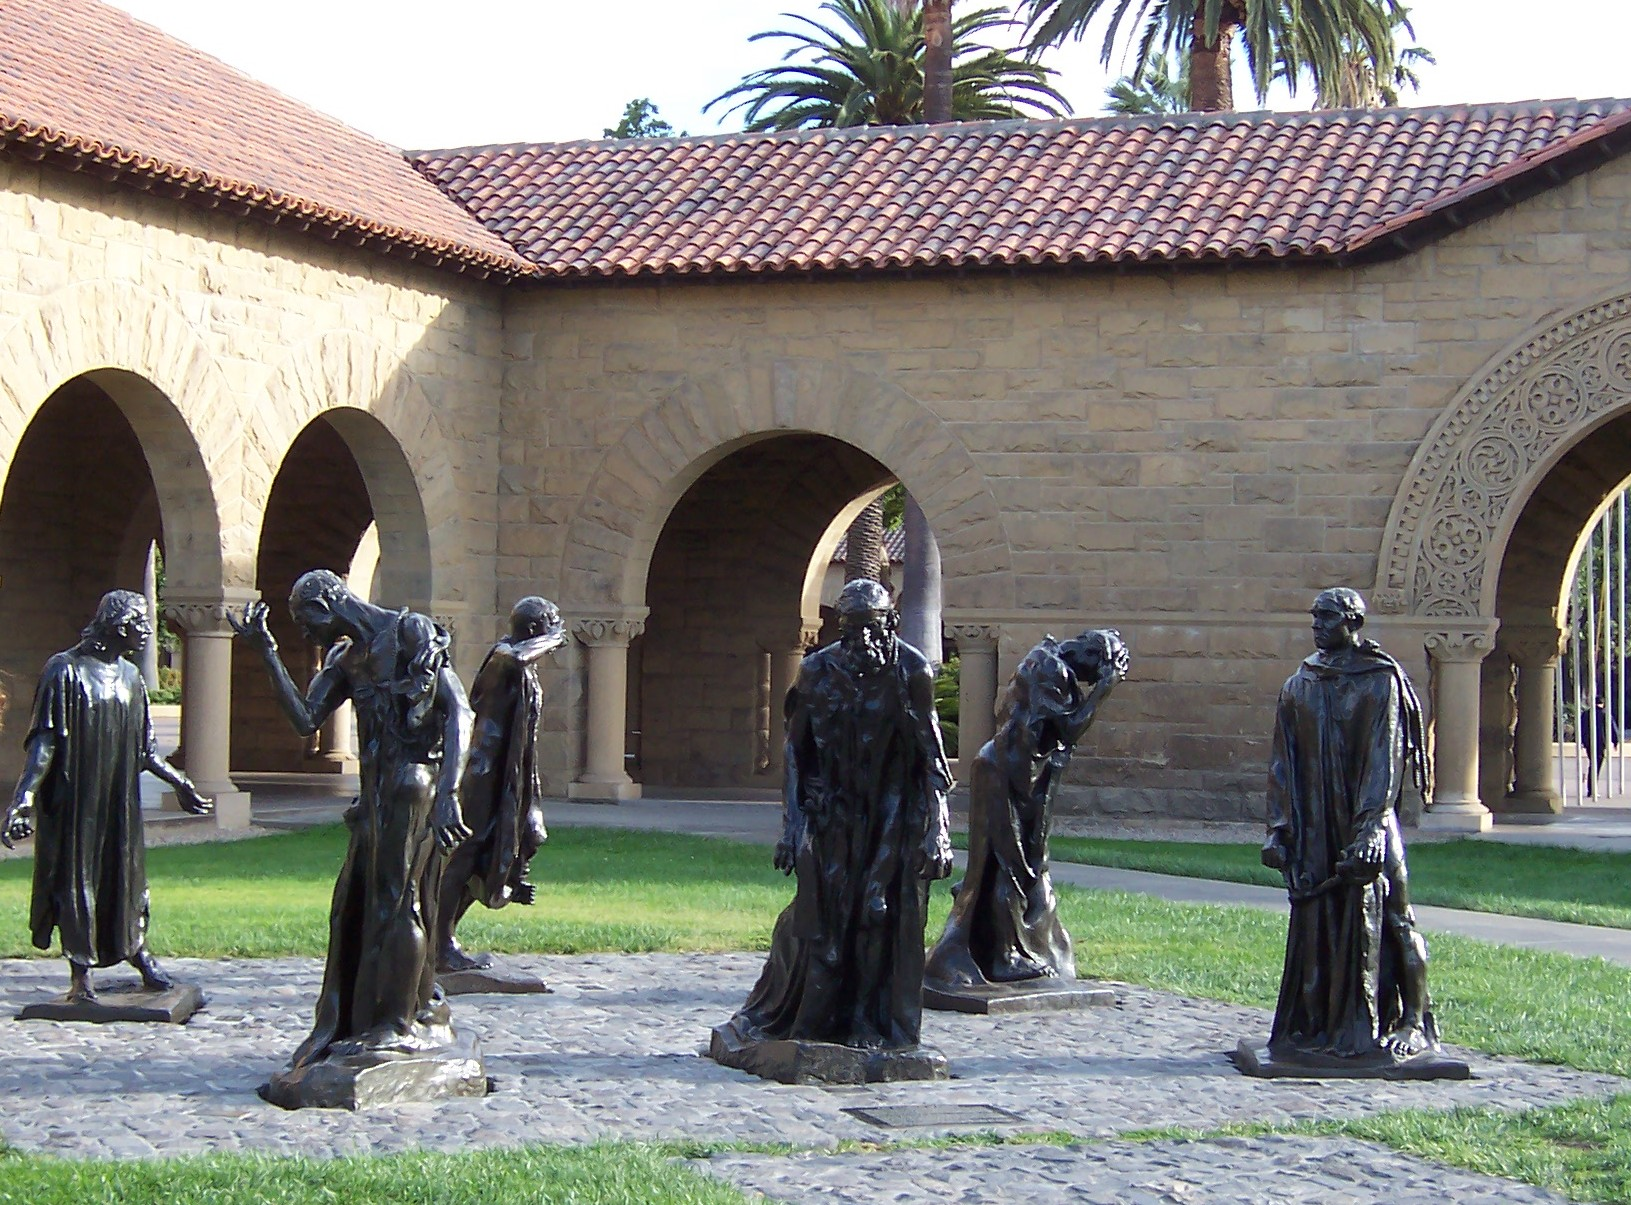 Bronze statues by Auguste Rodin are scattered through the campus, including these Burghers of Calais.